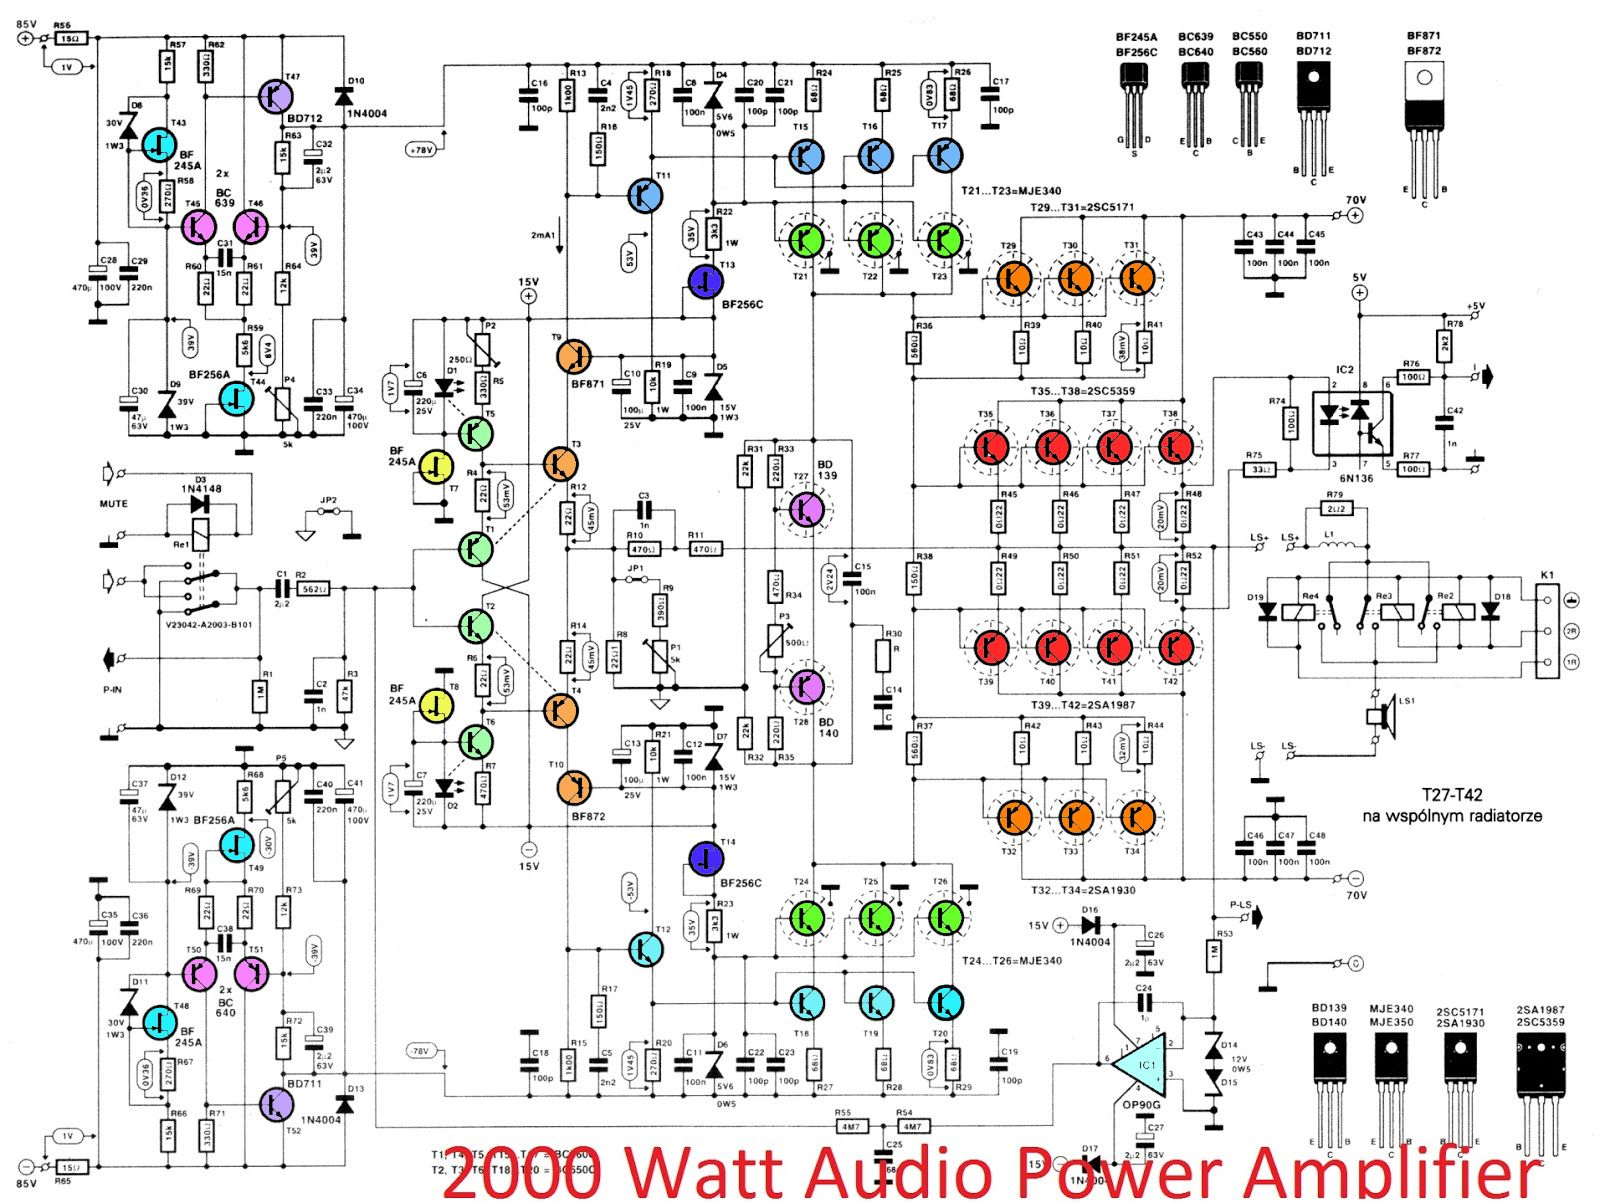 Dj Amplifier Wiring Diagram Multiple Electrical Subwoofers Diagrams For High Power Amps 2 Channel Amp Library Rh 7 Evitta De 0